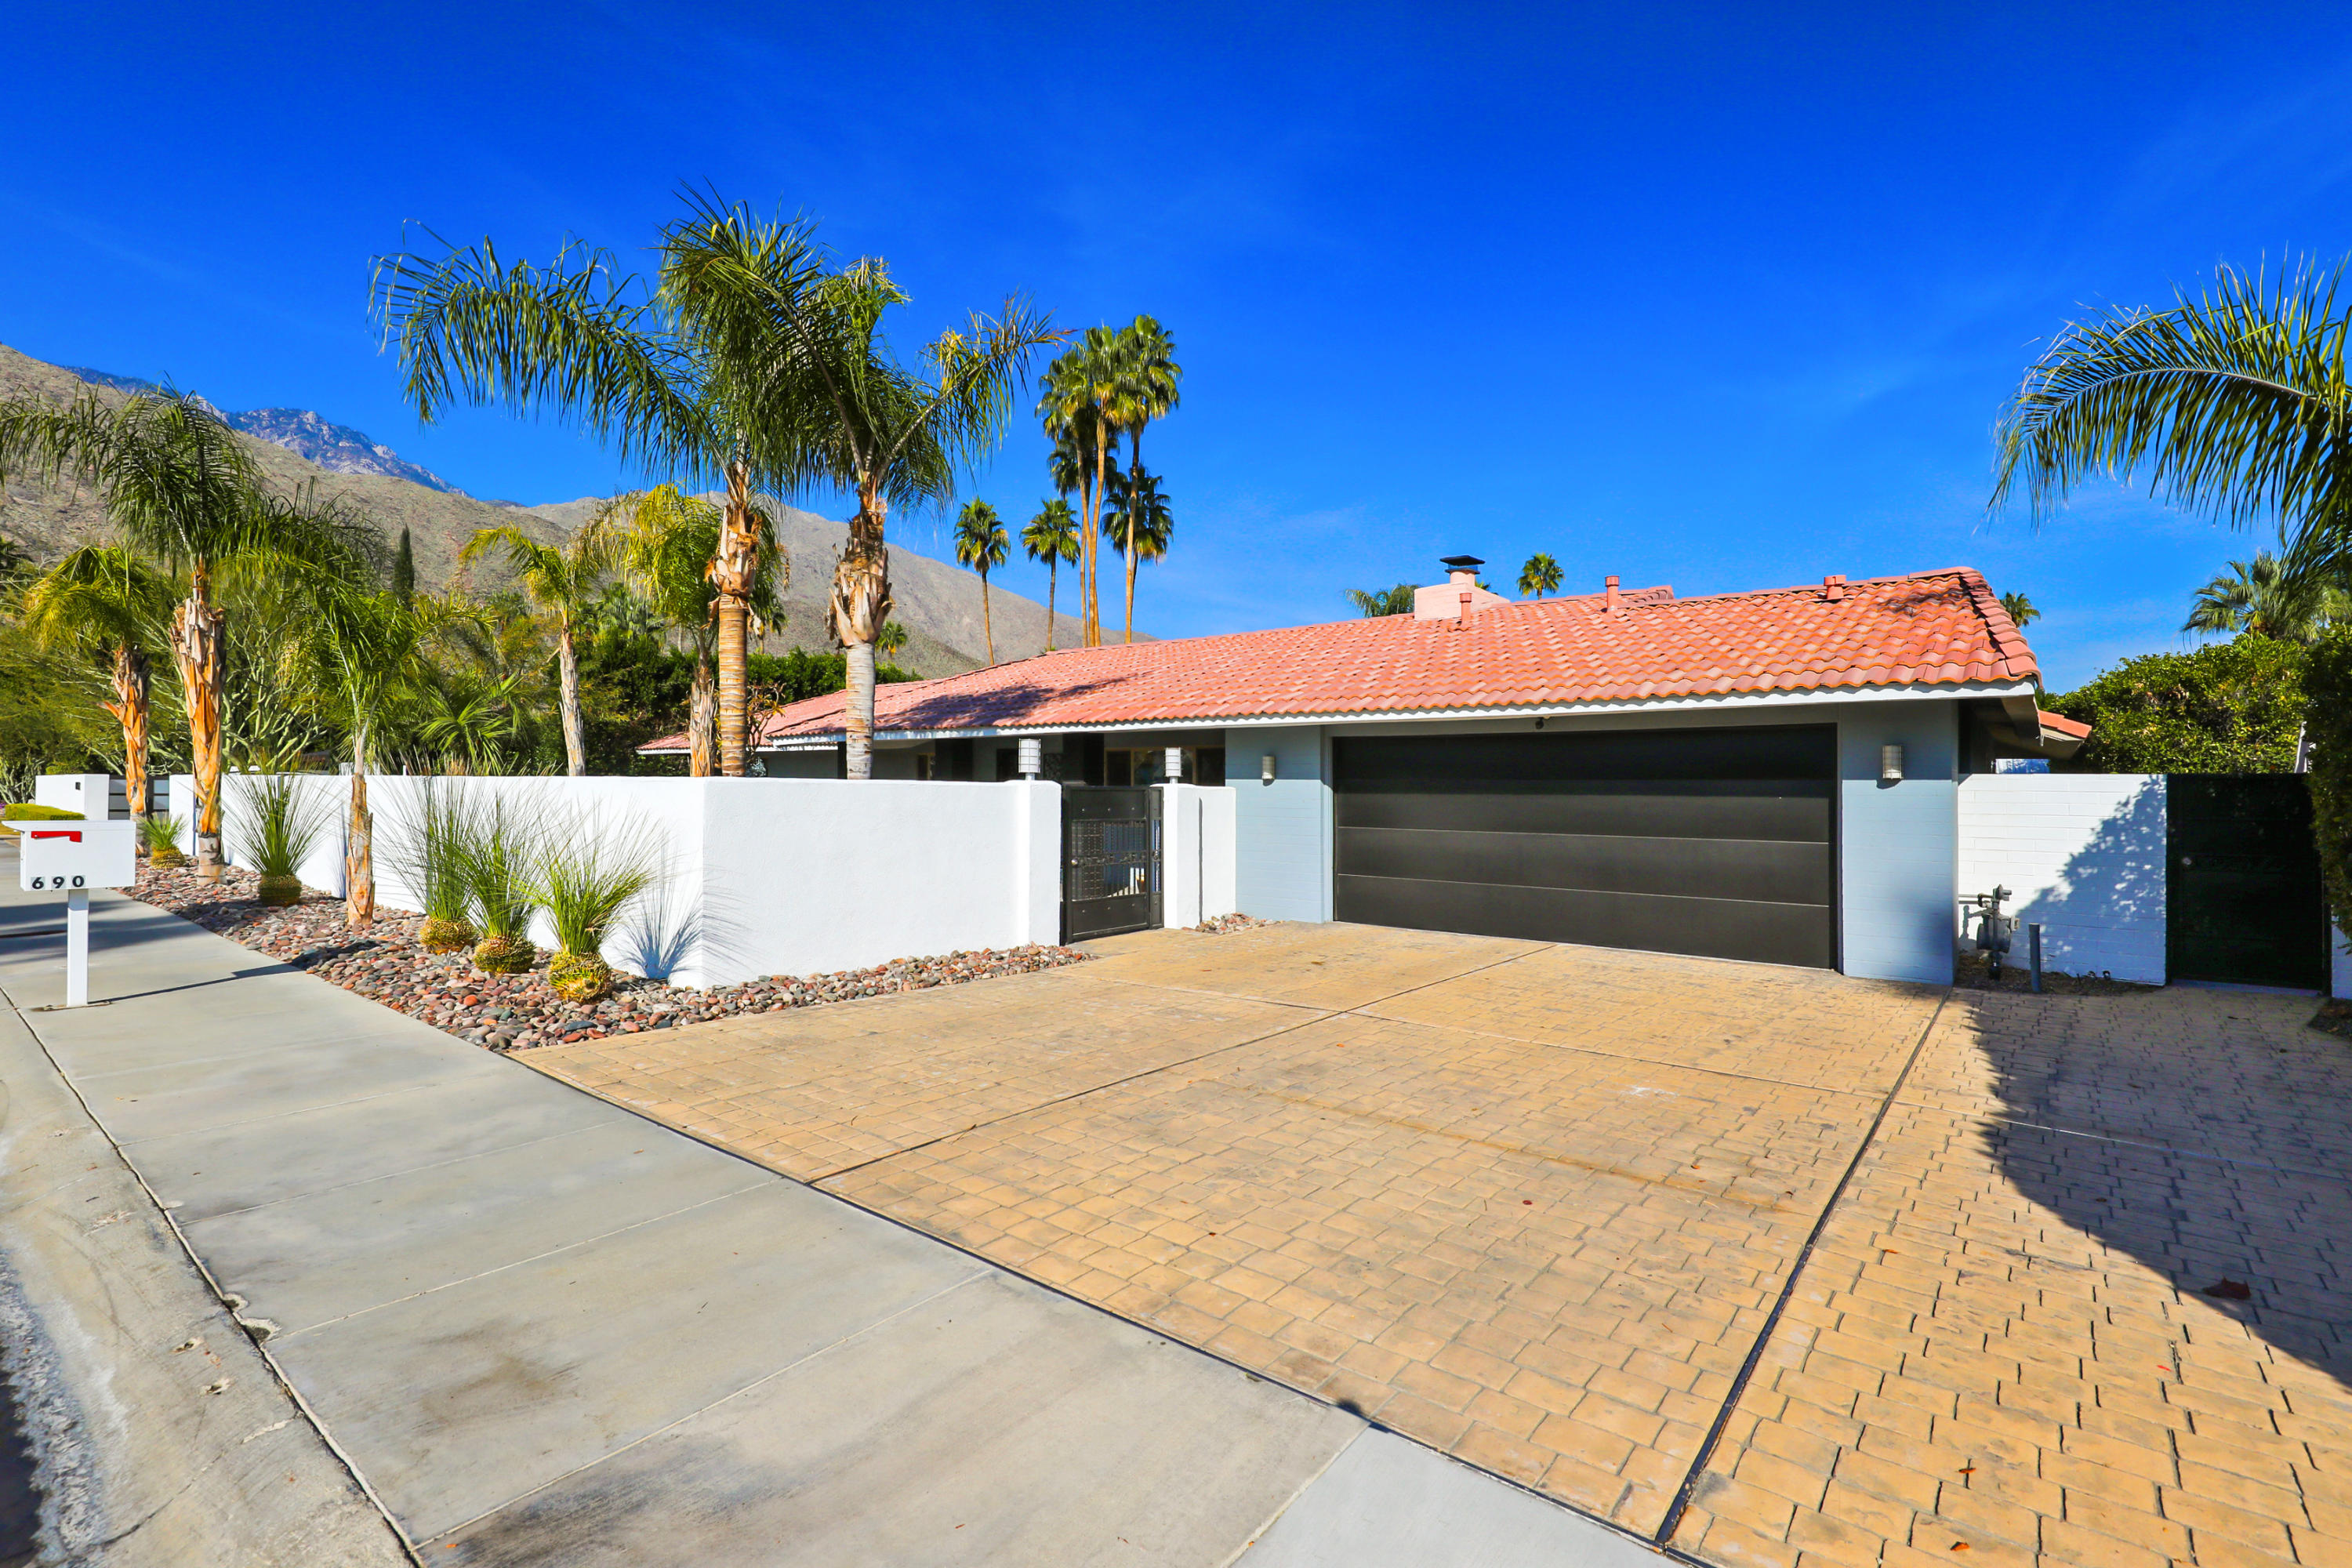 690 E Sierra Way, Palm Springs, California 92264, 4 Bedrooms Bedrooms, ,4 BathroomsBathrooms,Residential,For Sale,690 E Sierra Way,219037483